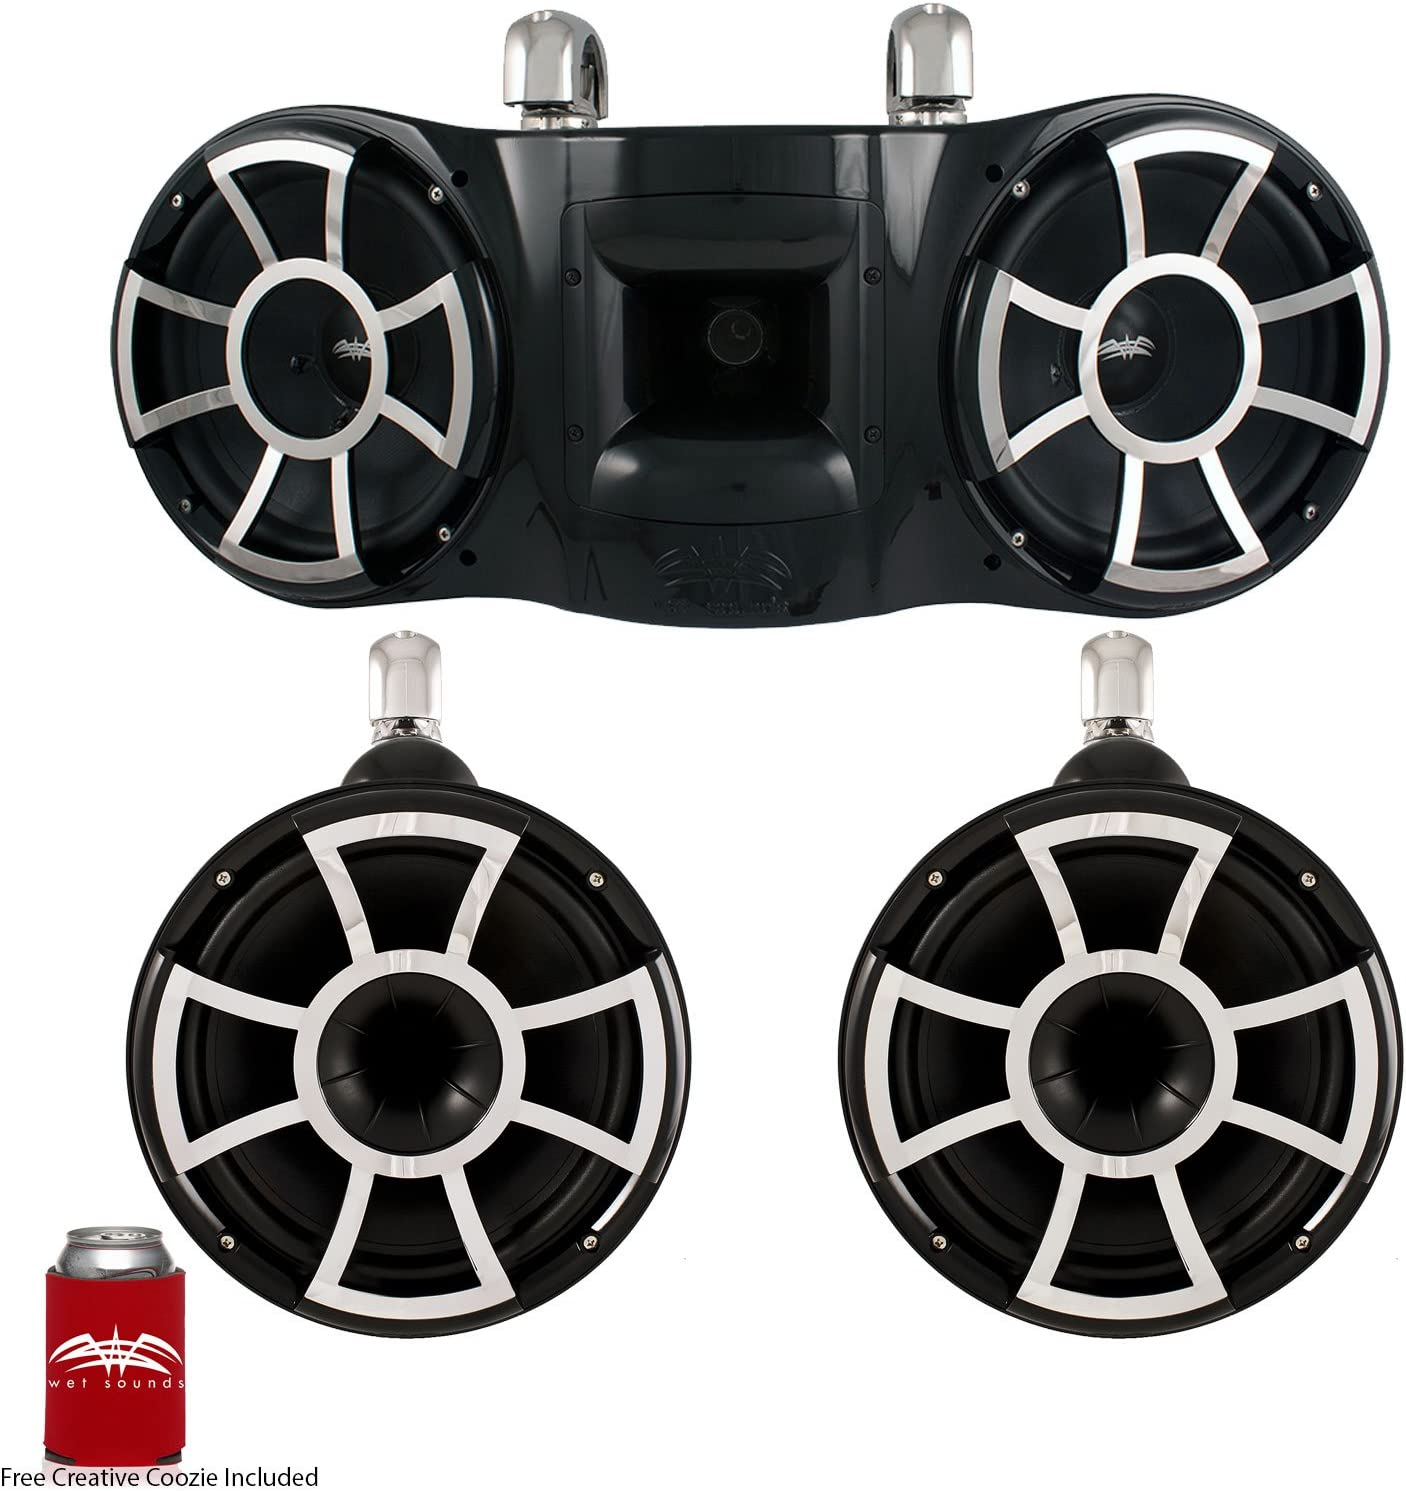 Inexpensive Wet sale Sounds REV 3-Some - A Pair Speakers REV10 of REV41 Tower